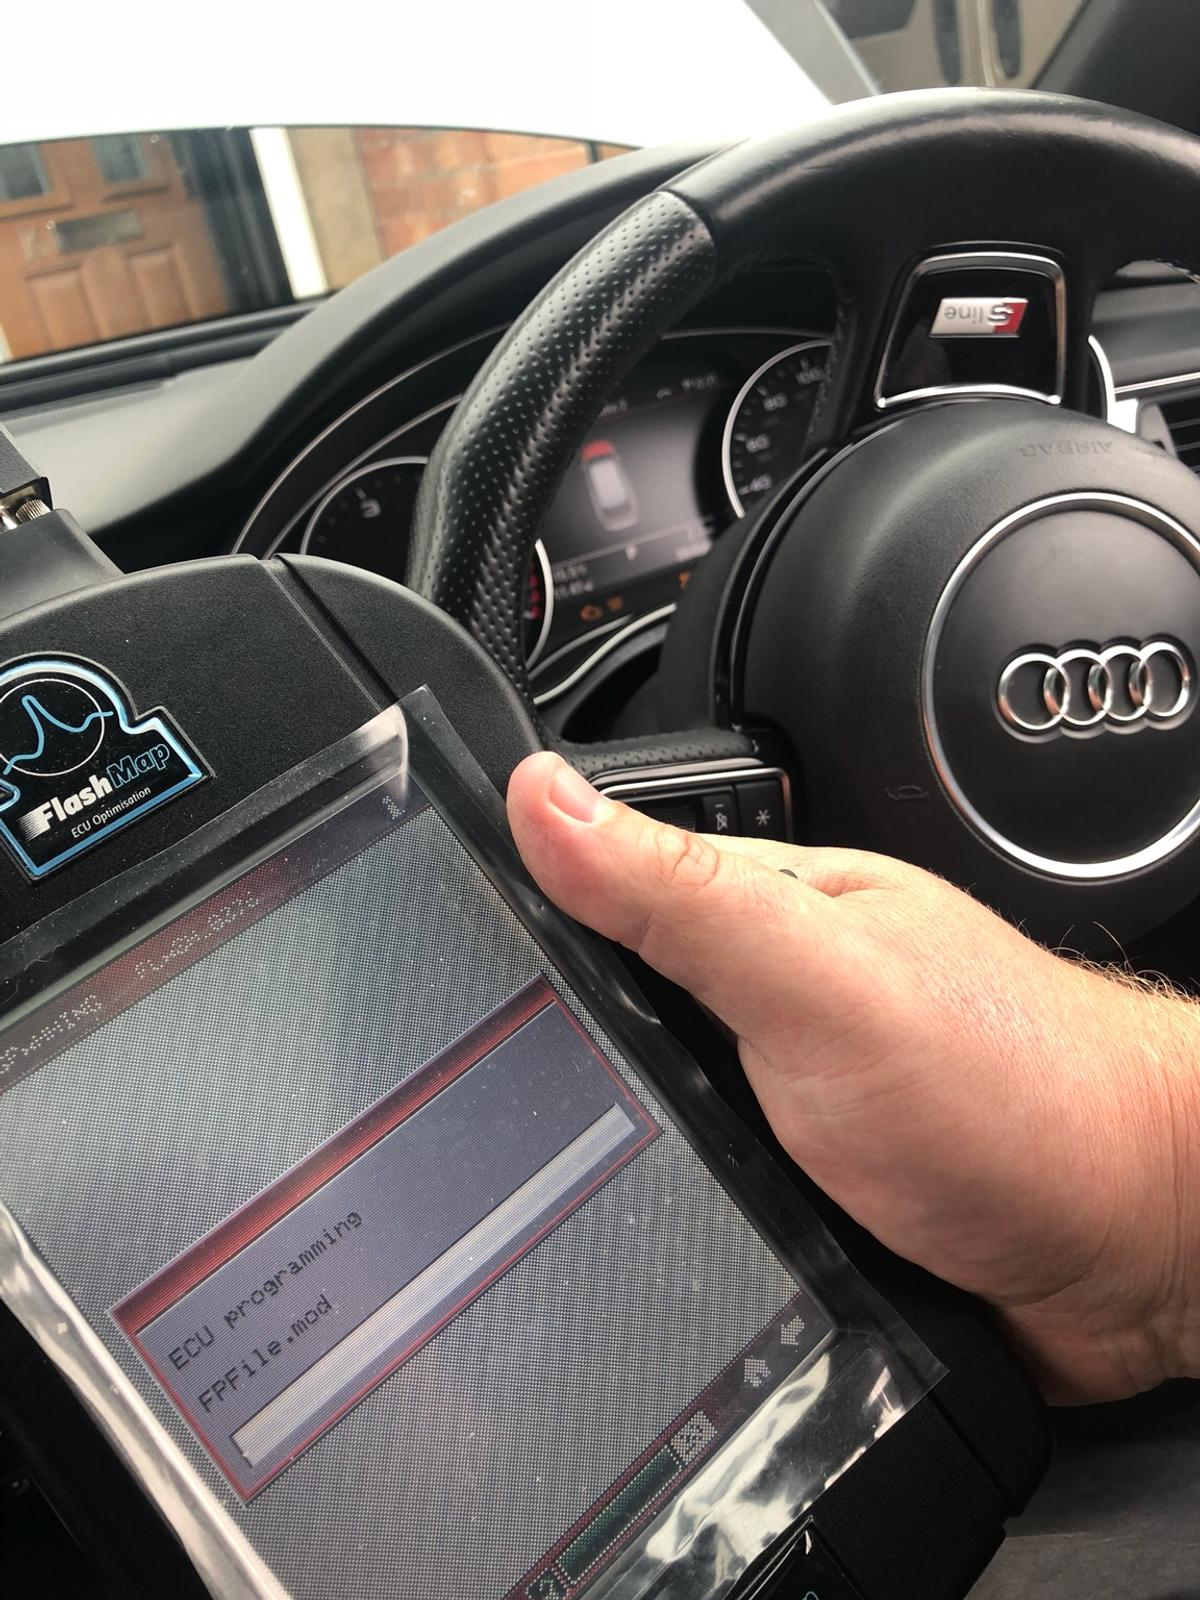 Mobile Ecu Remapping/Tuning in LE10 Hinckley for £165 00 for